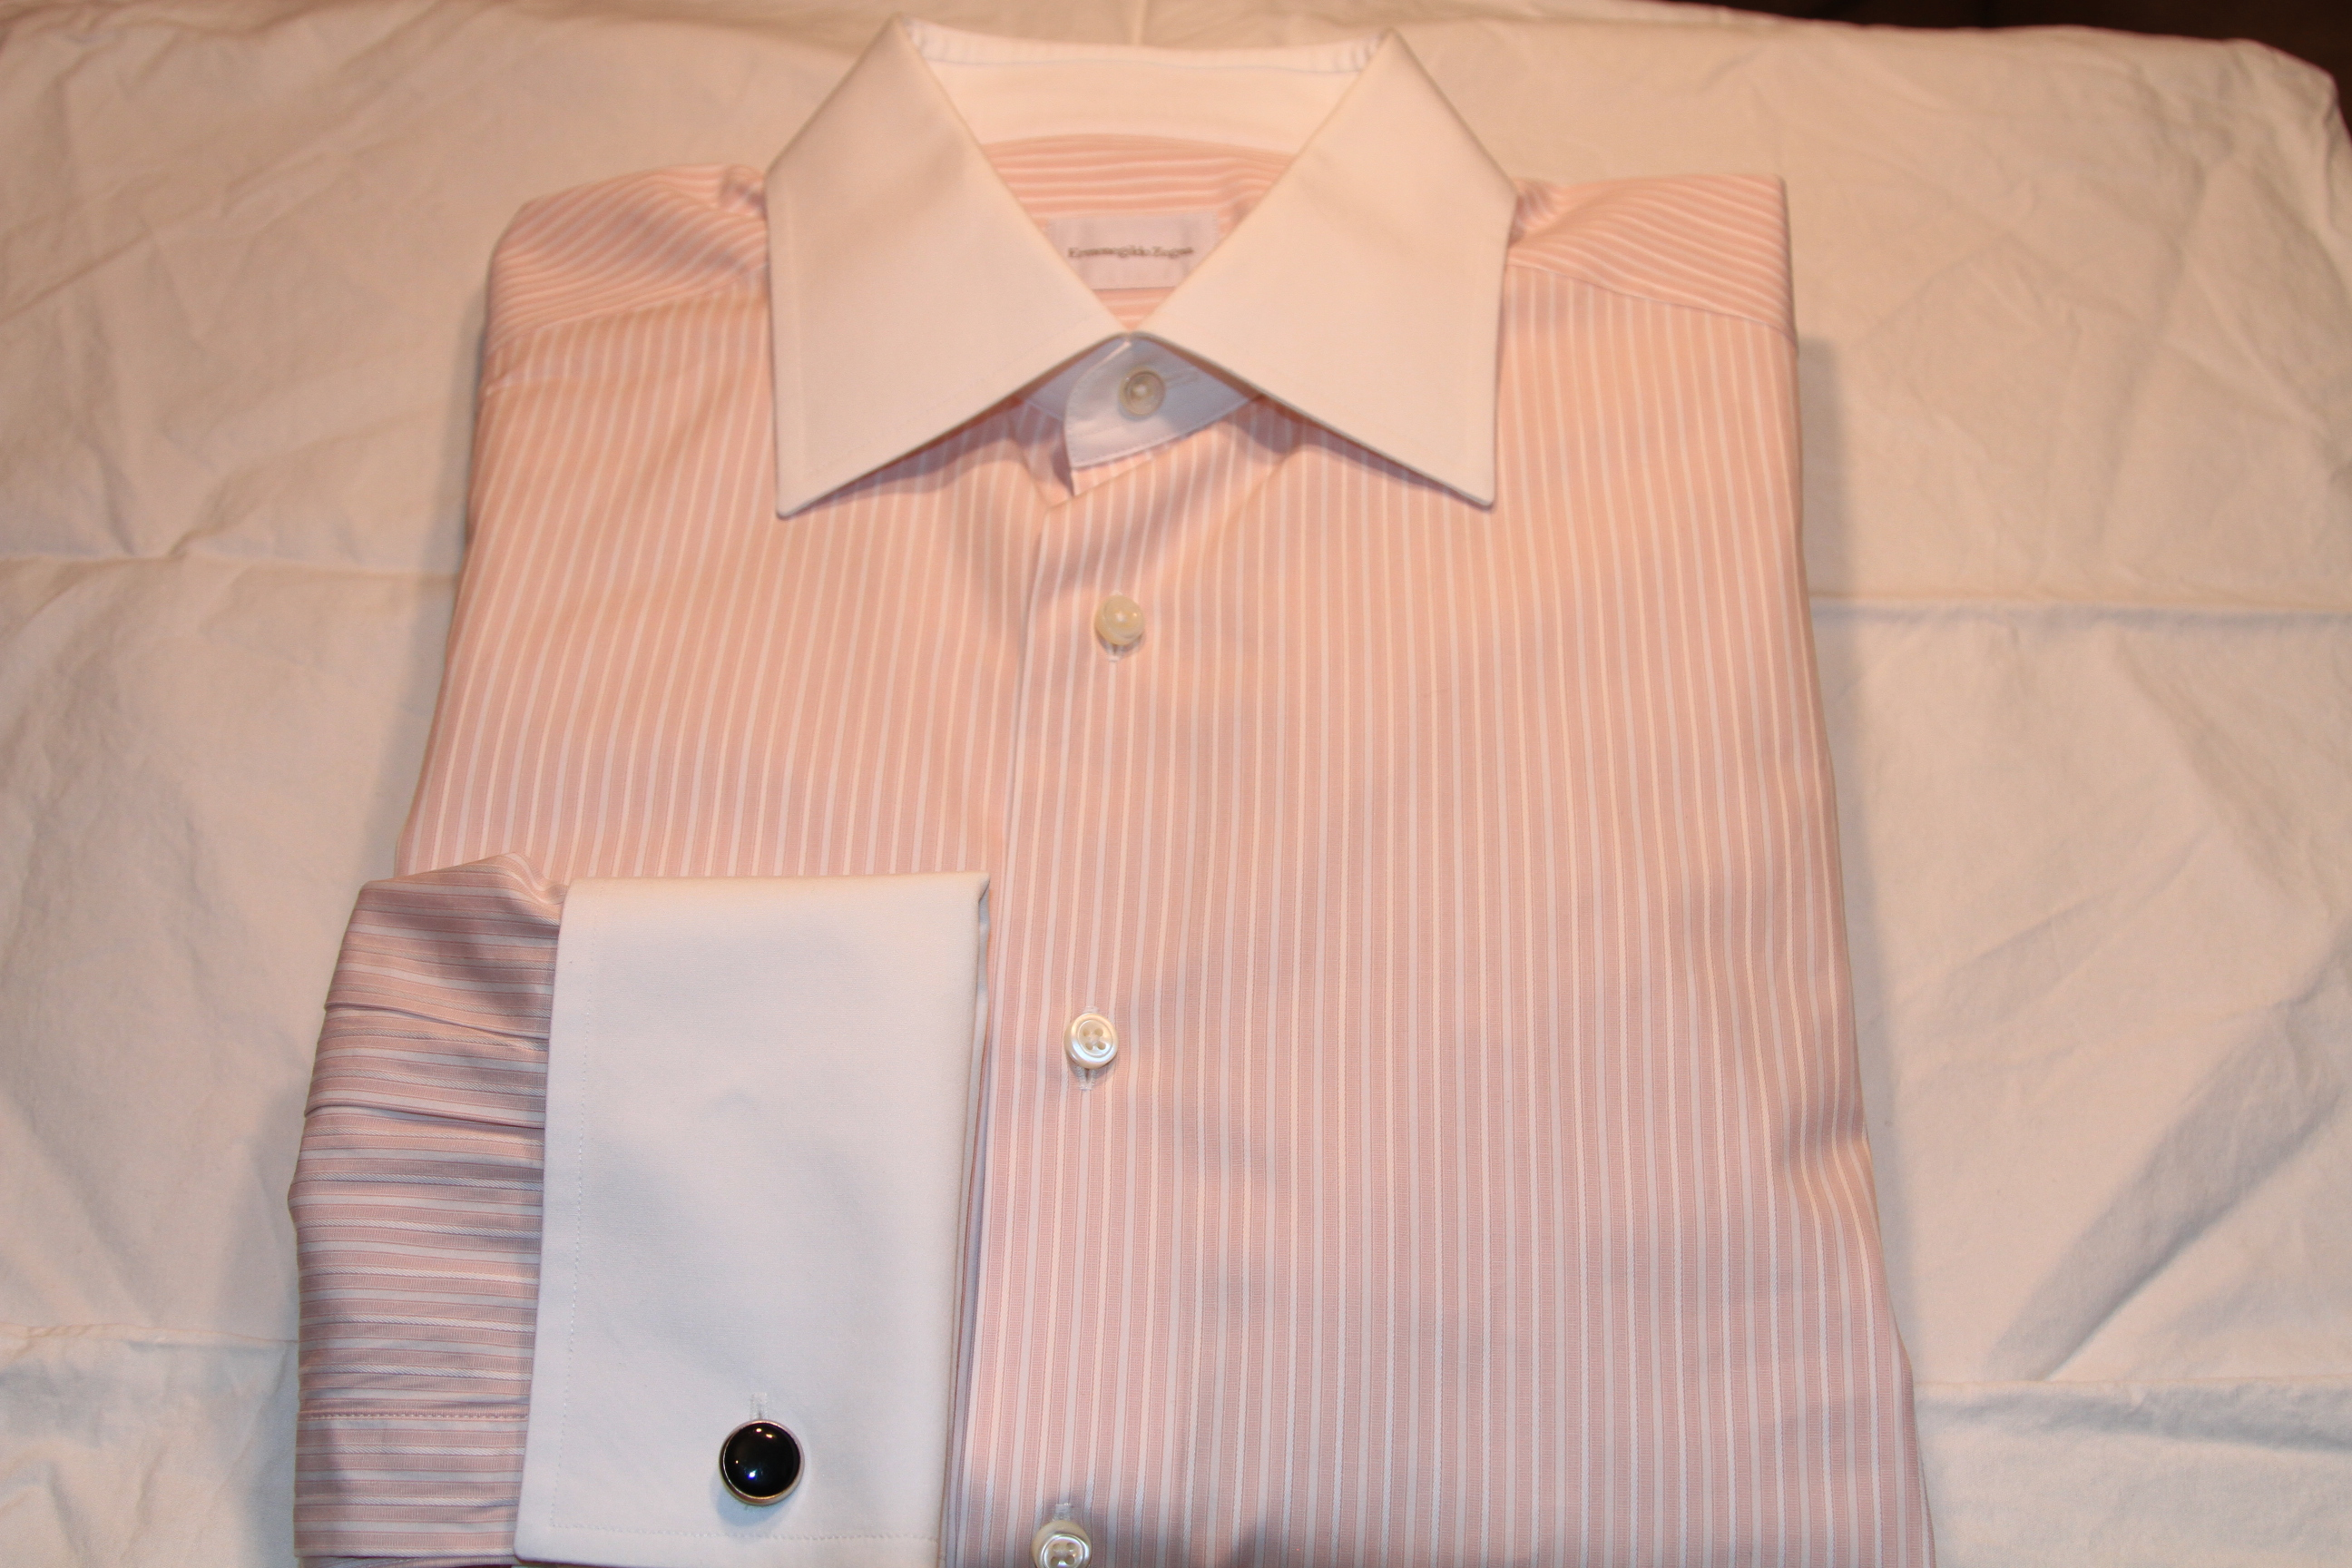 #2 - Zegna 41/16 Light Pink with White Stripe (White Collar and White Cuffs)